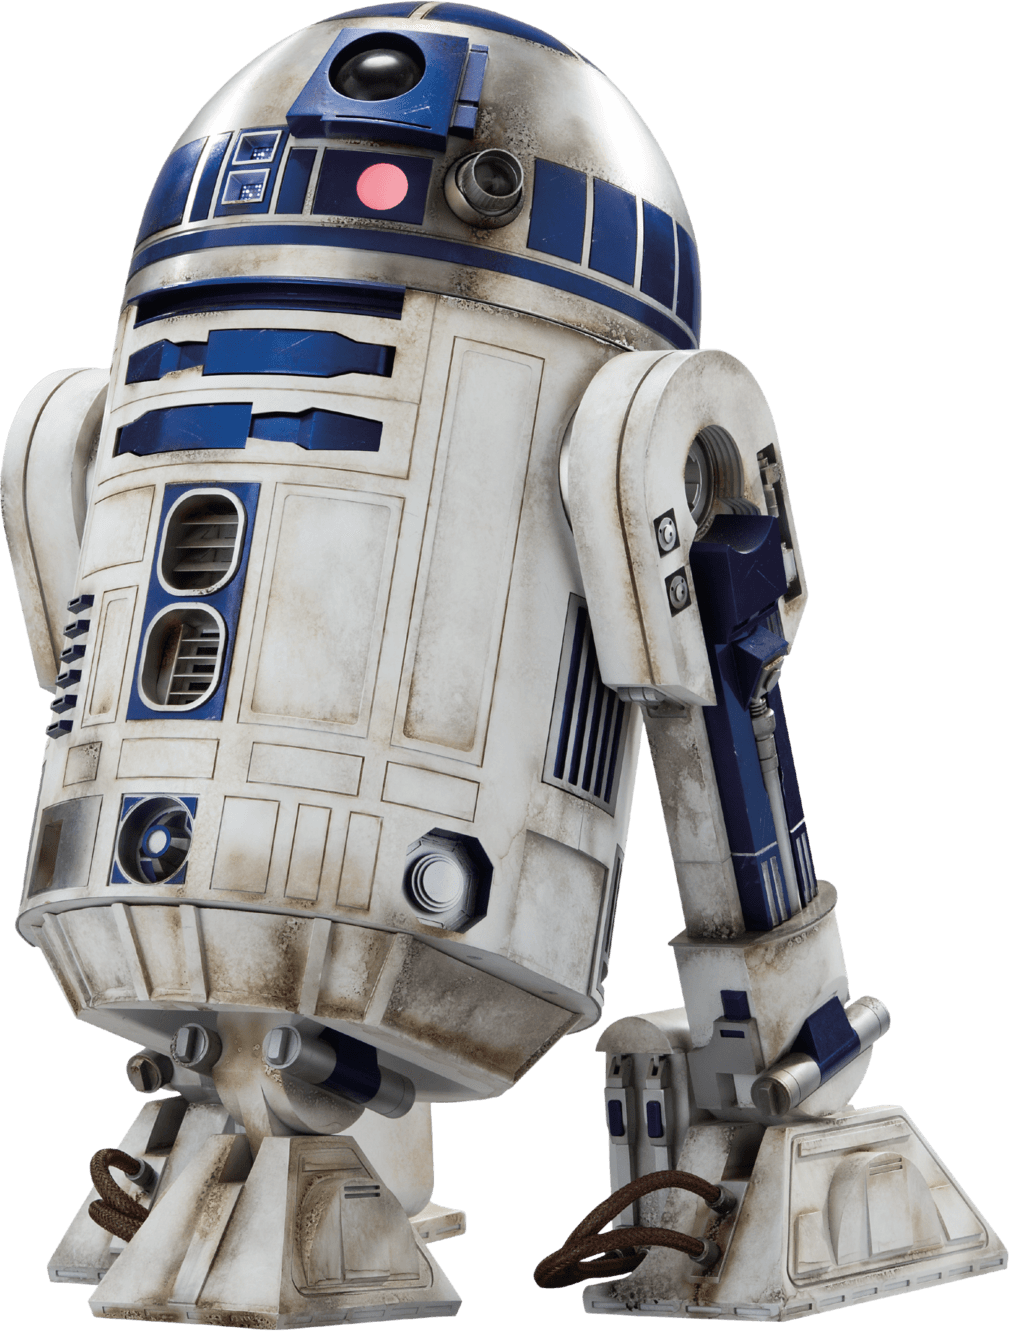 Star wars clipart r2d2 picture R2d2 Star Wars picture